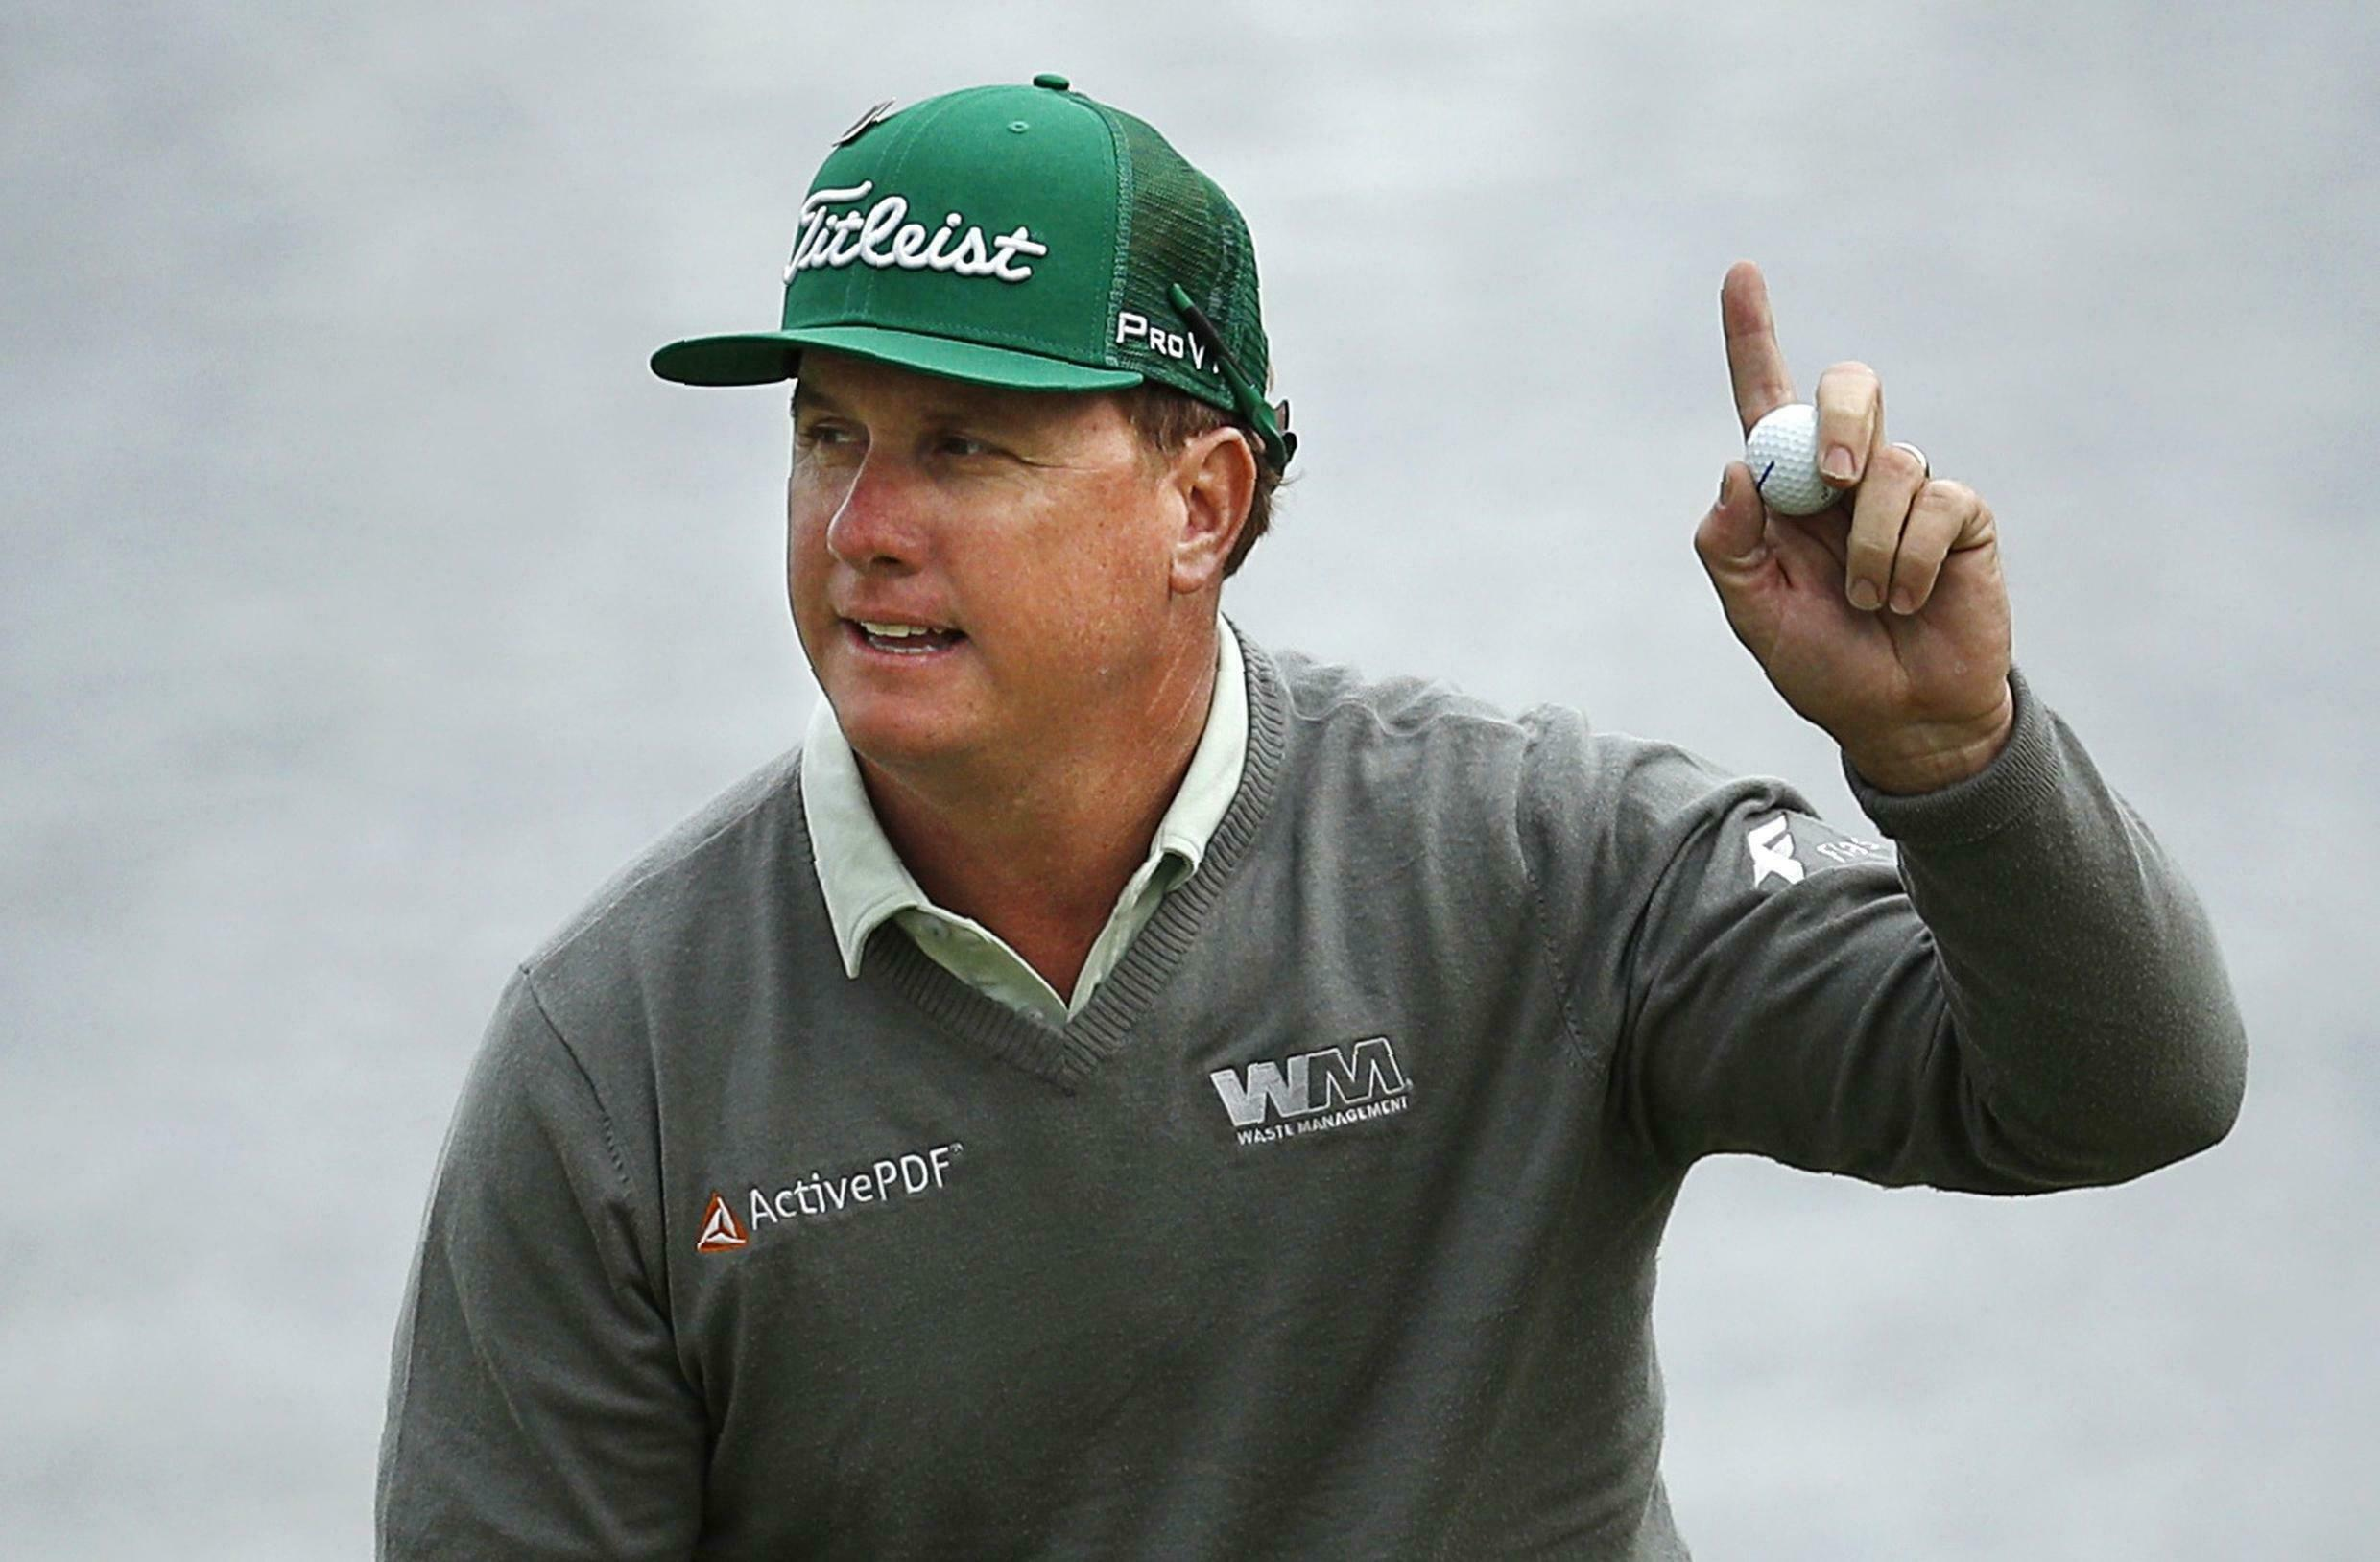 Charley Hoffman carved out the biggest first day lead at the Masters since 1955.